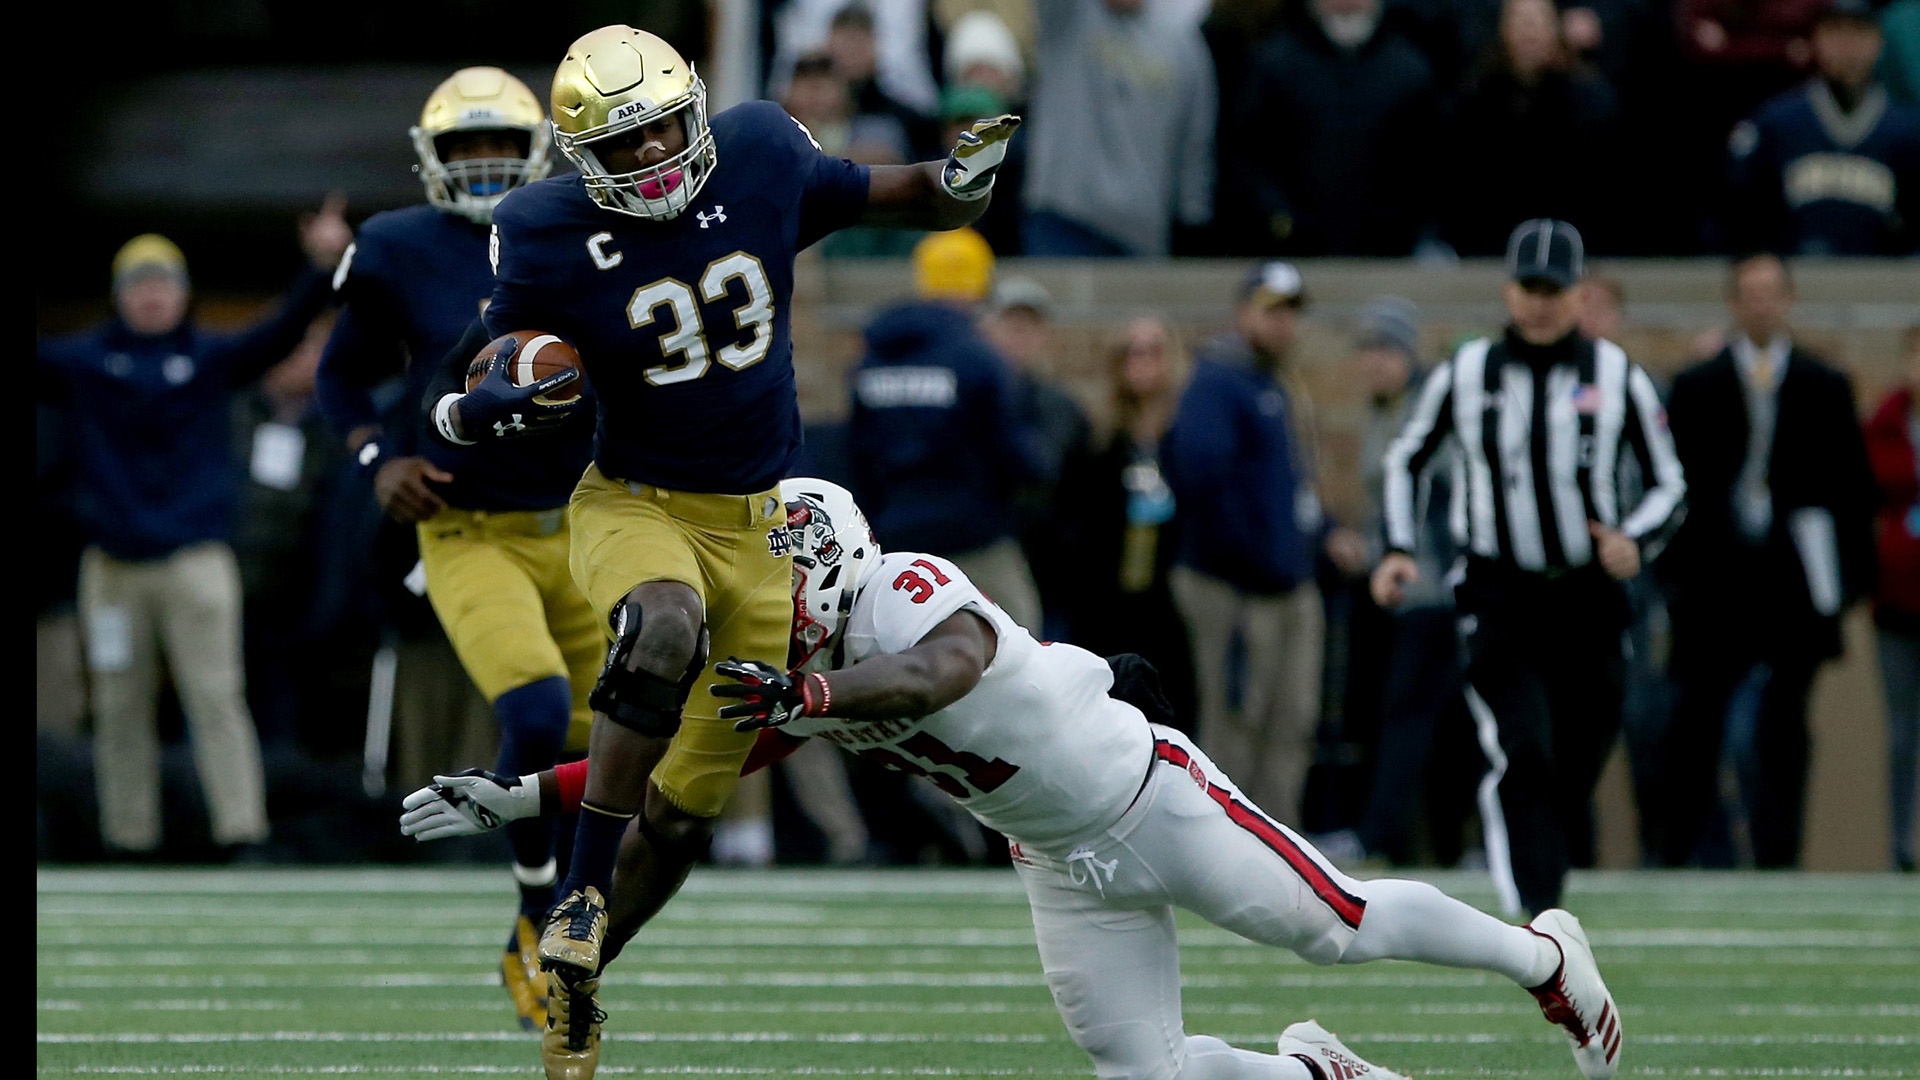 Three takeaways from No. 9 Notre Dame's win over No. 14 N.C. State